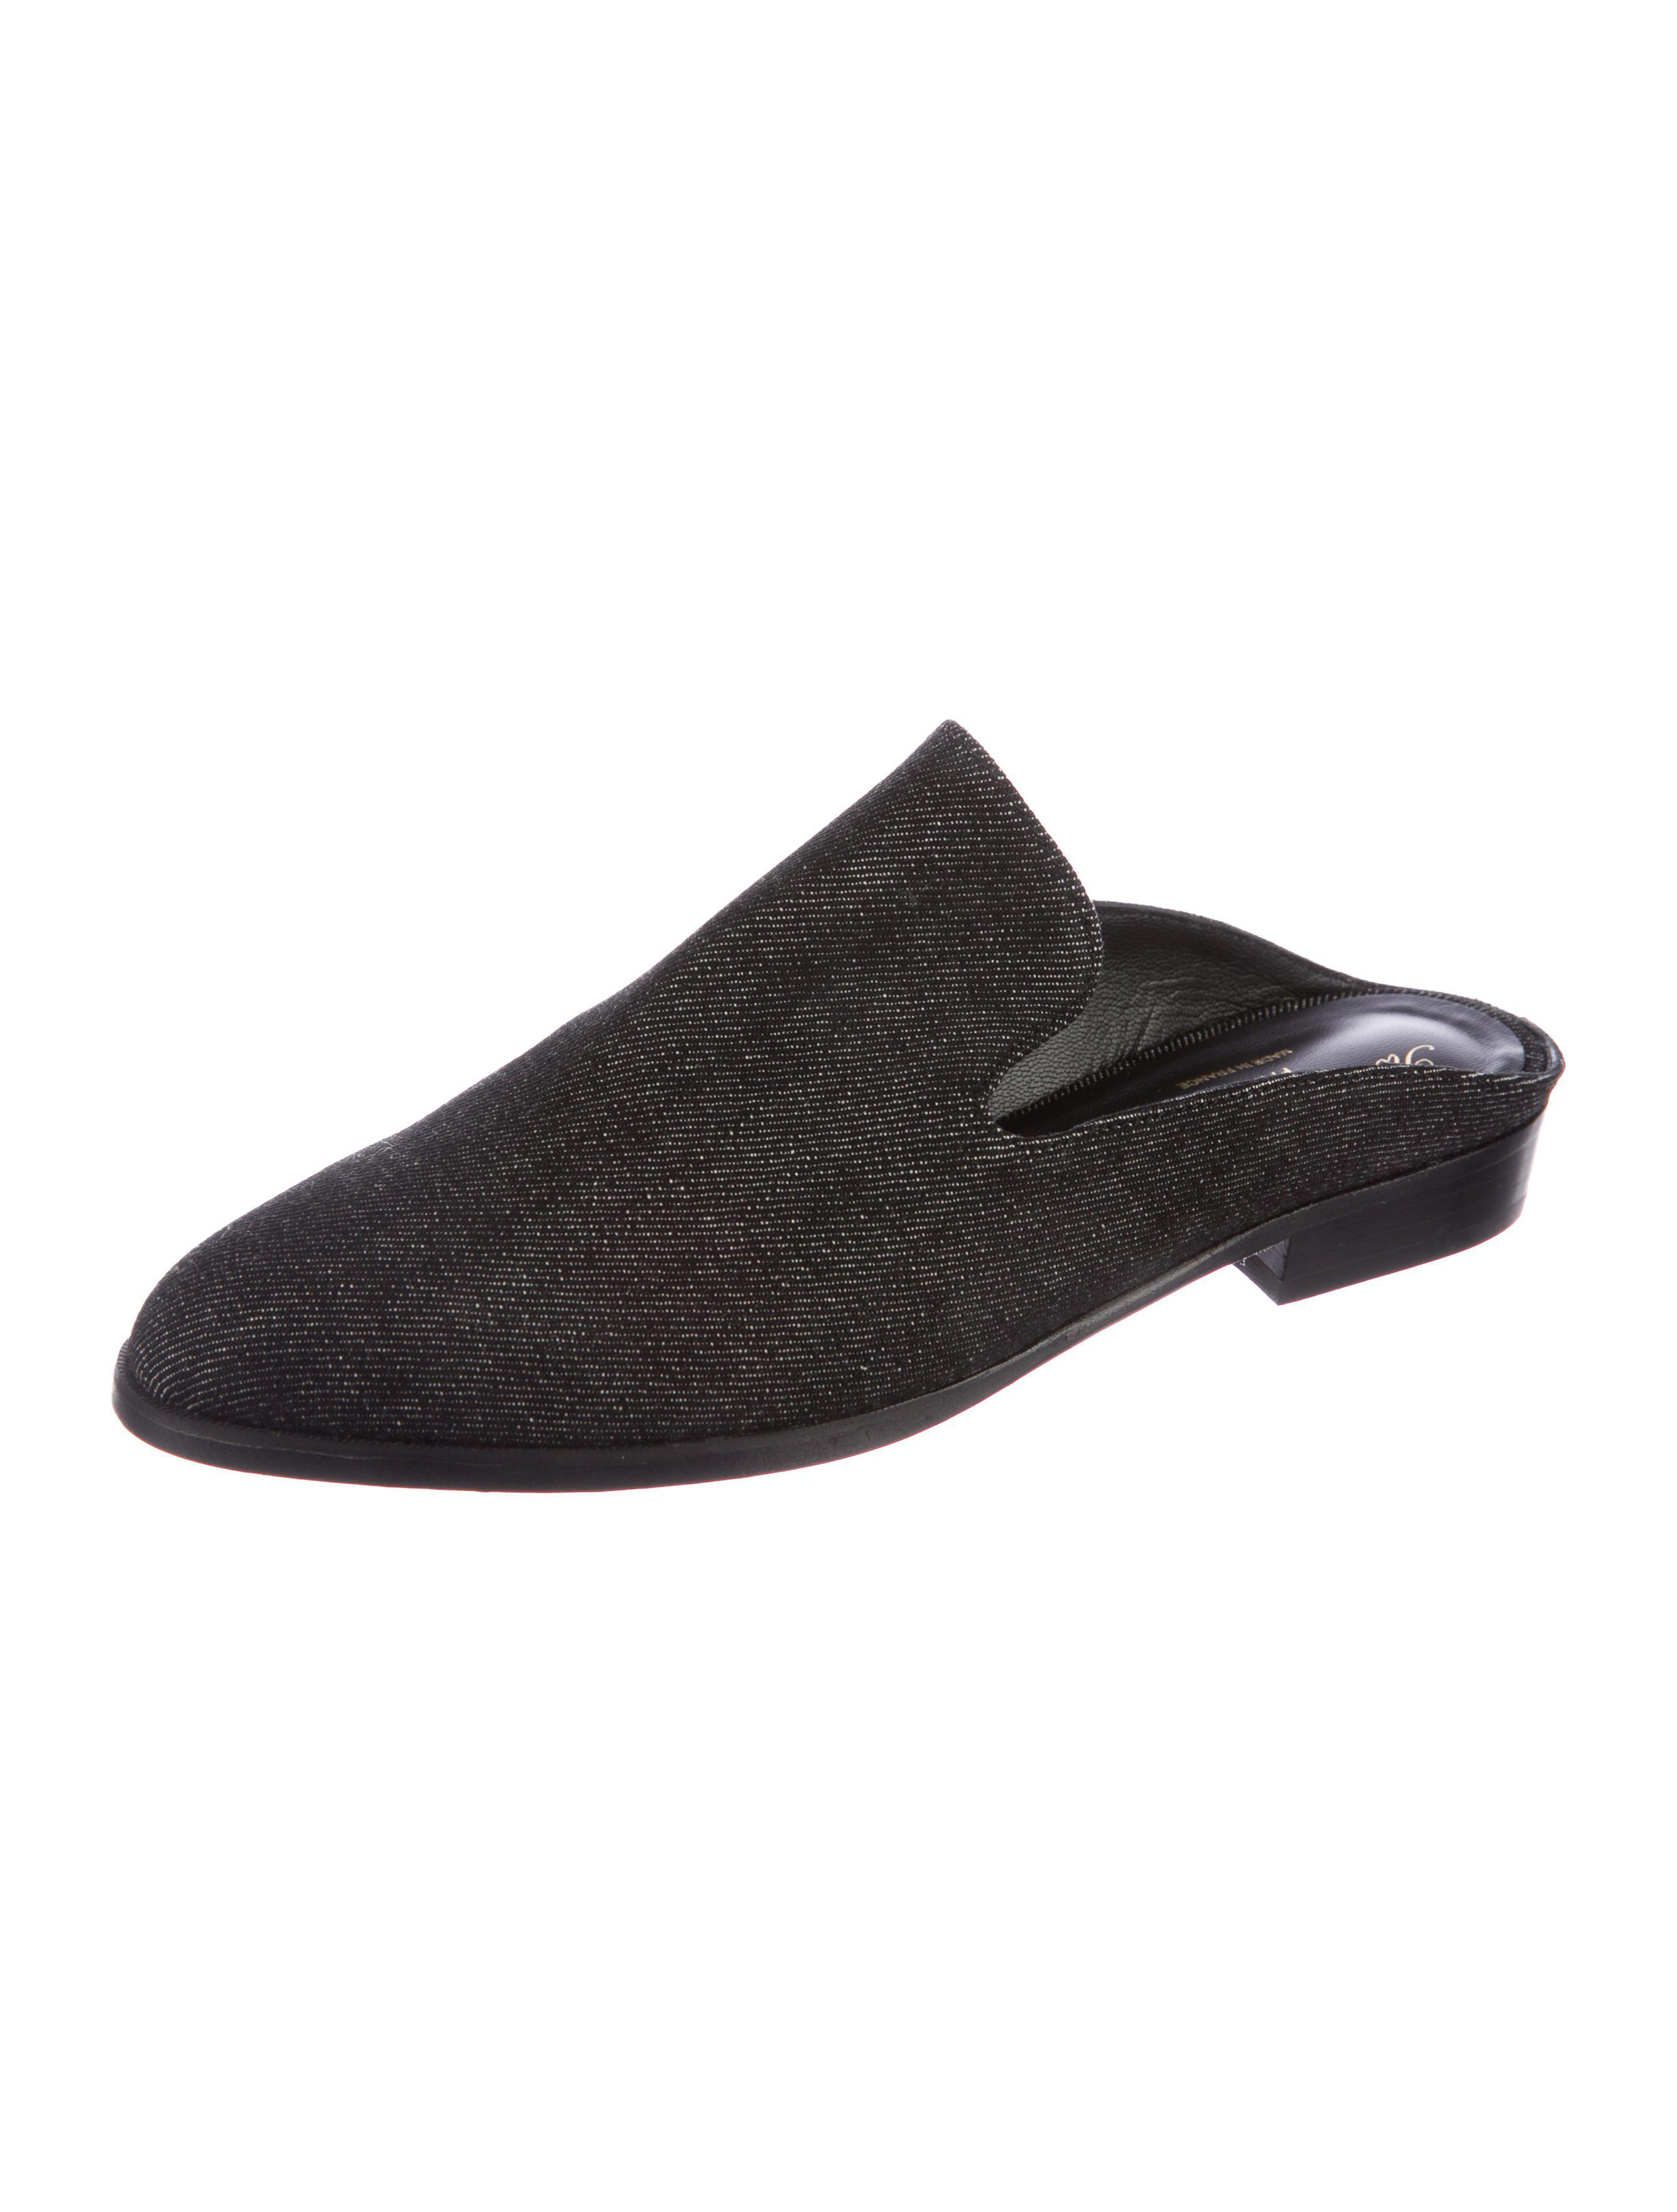 cheap prices authentic discount affordable Robert Clergerie Embossed Round-Toe Mules discount 100% guaranteed RtPMVfqw